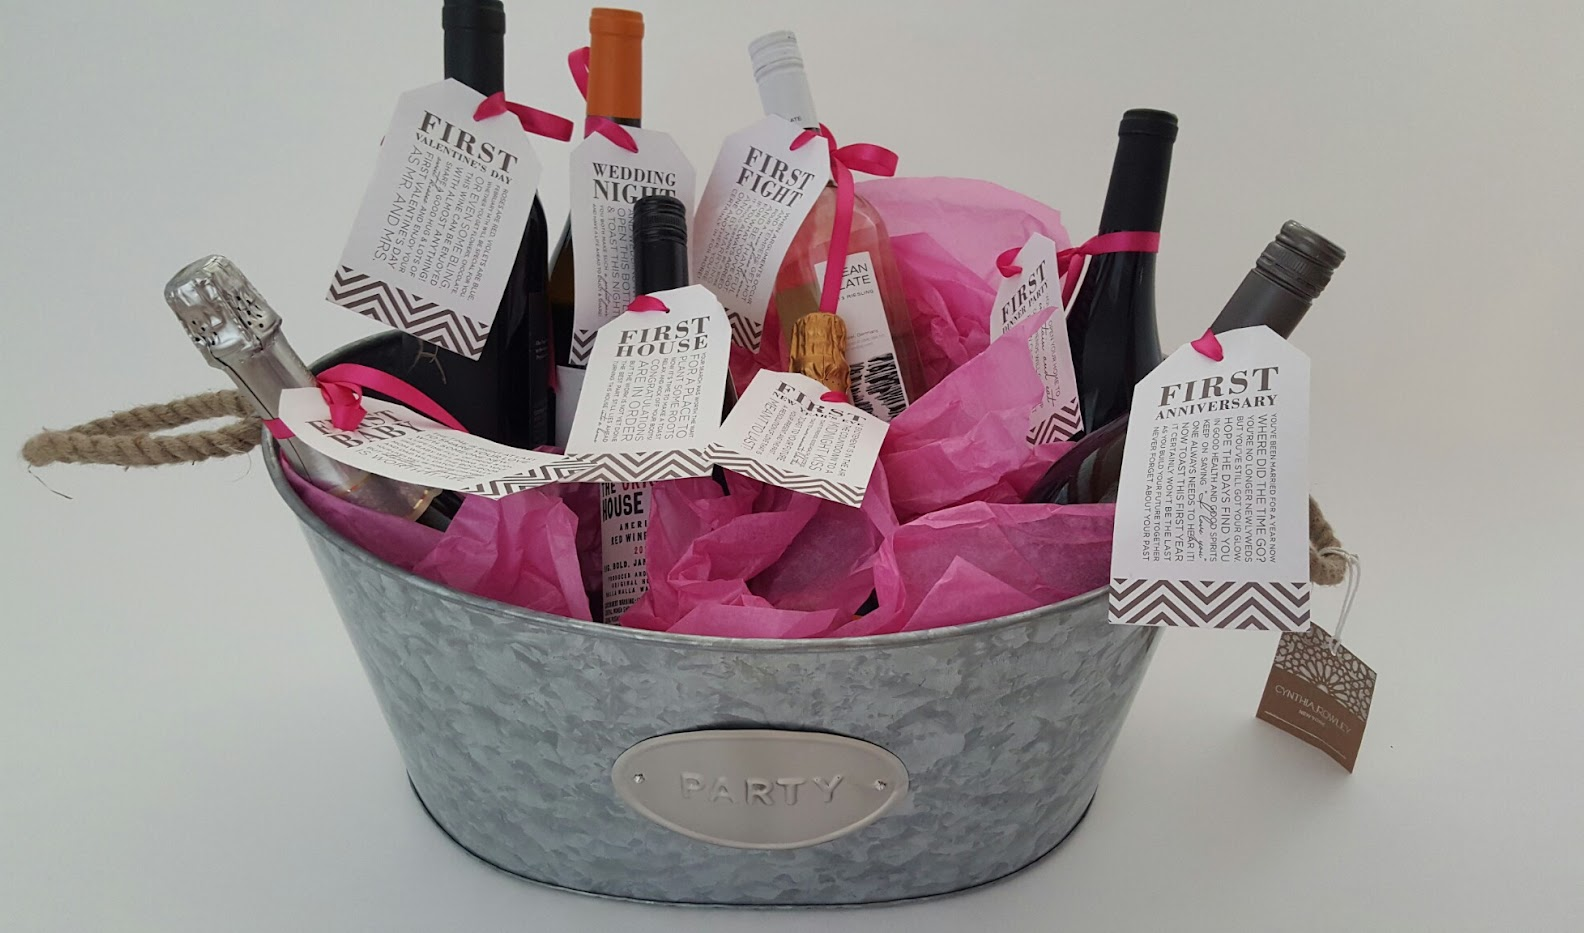 Wedding Shower Gift Basket Ideas : Ideas Wedding Shower Gift Basket Ideas bridal shower gift diy to try a ...